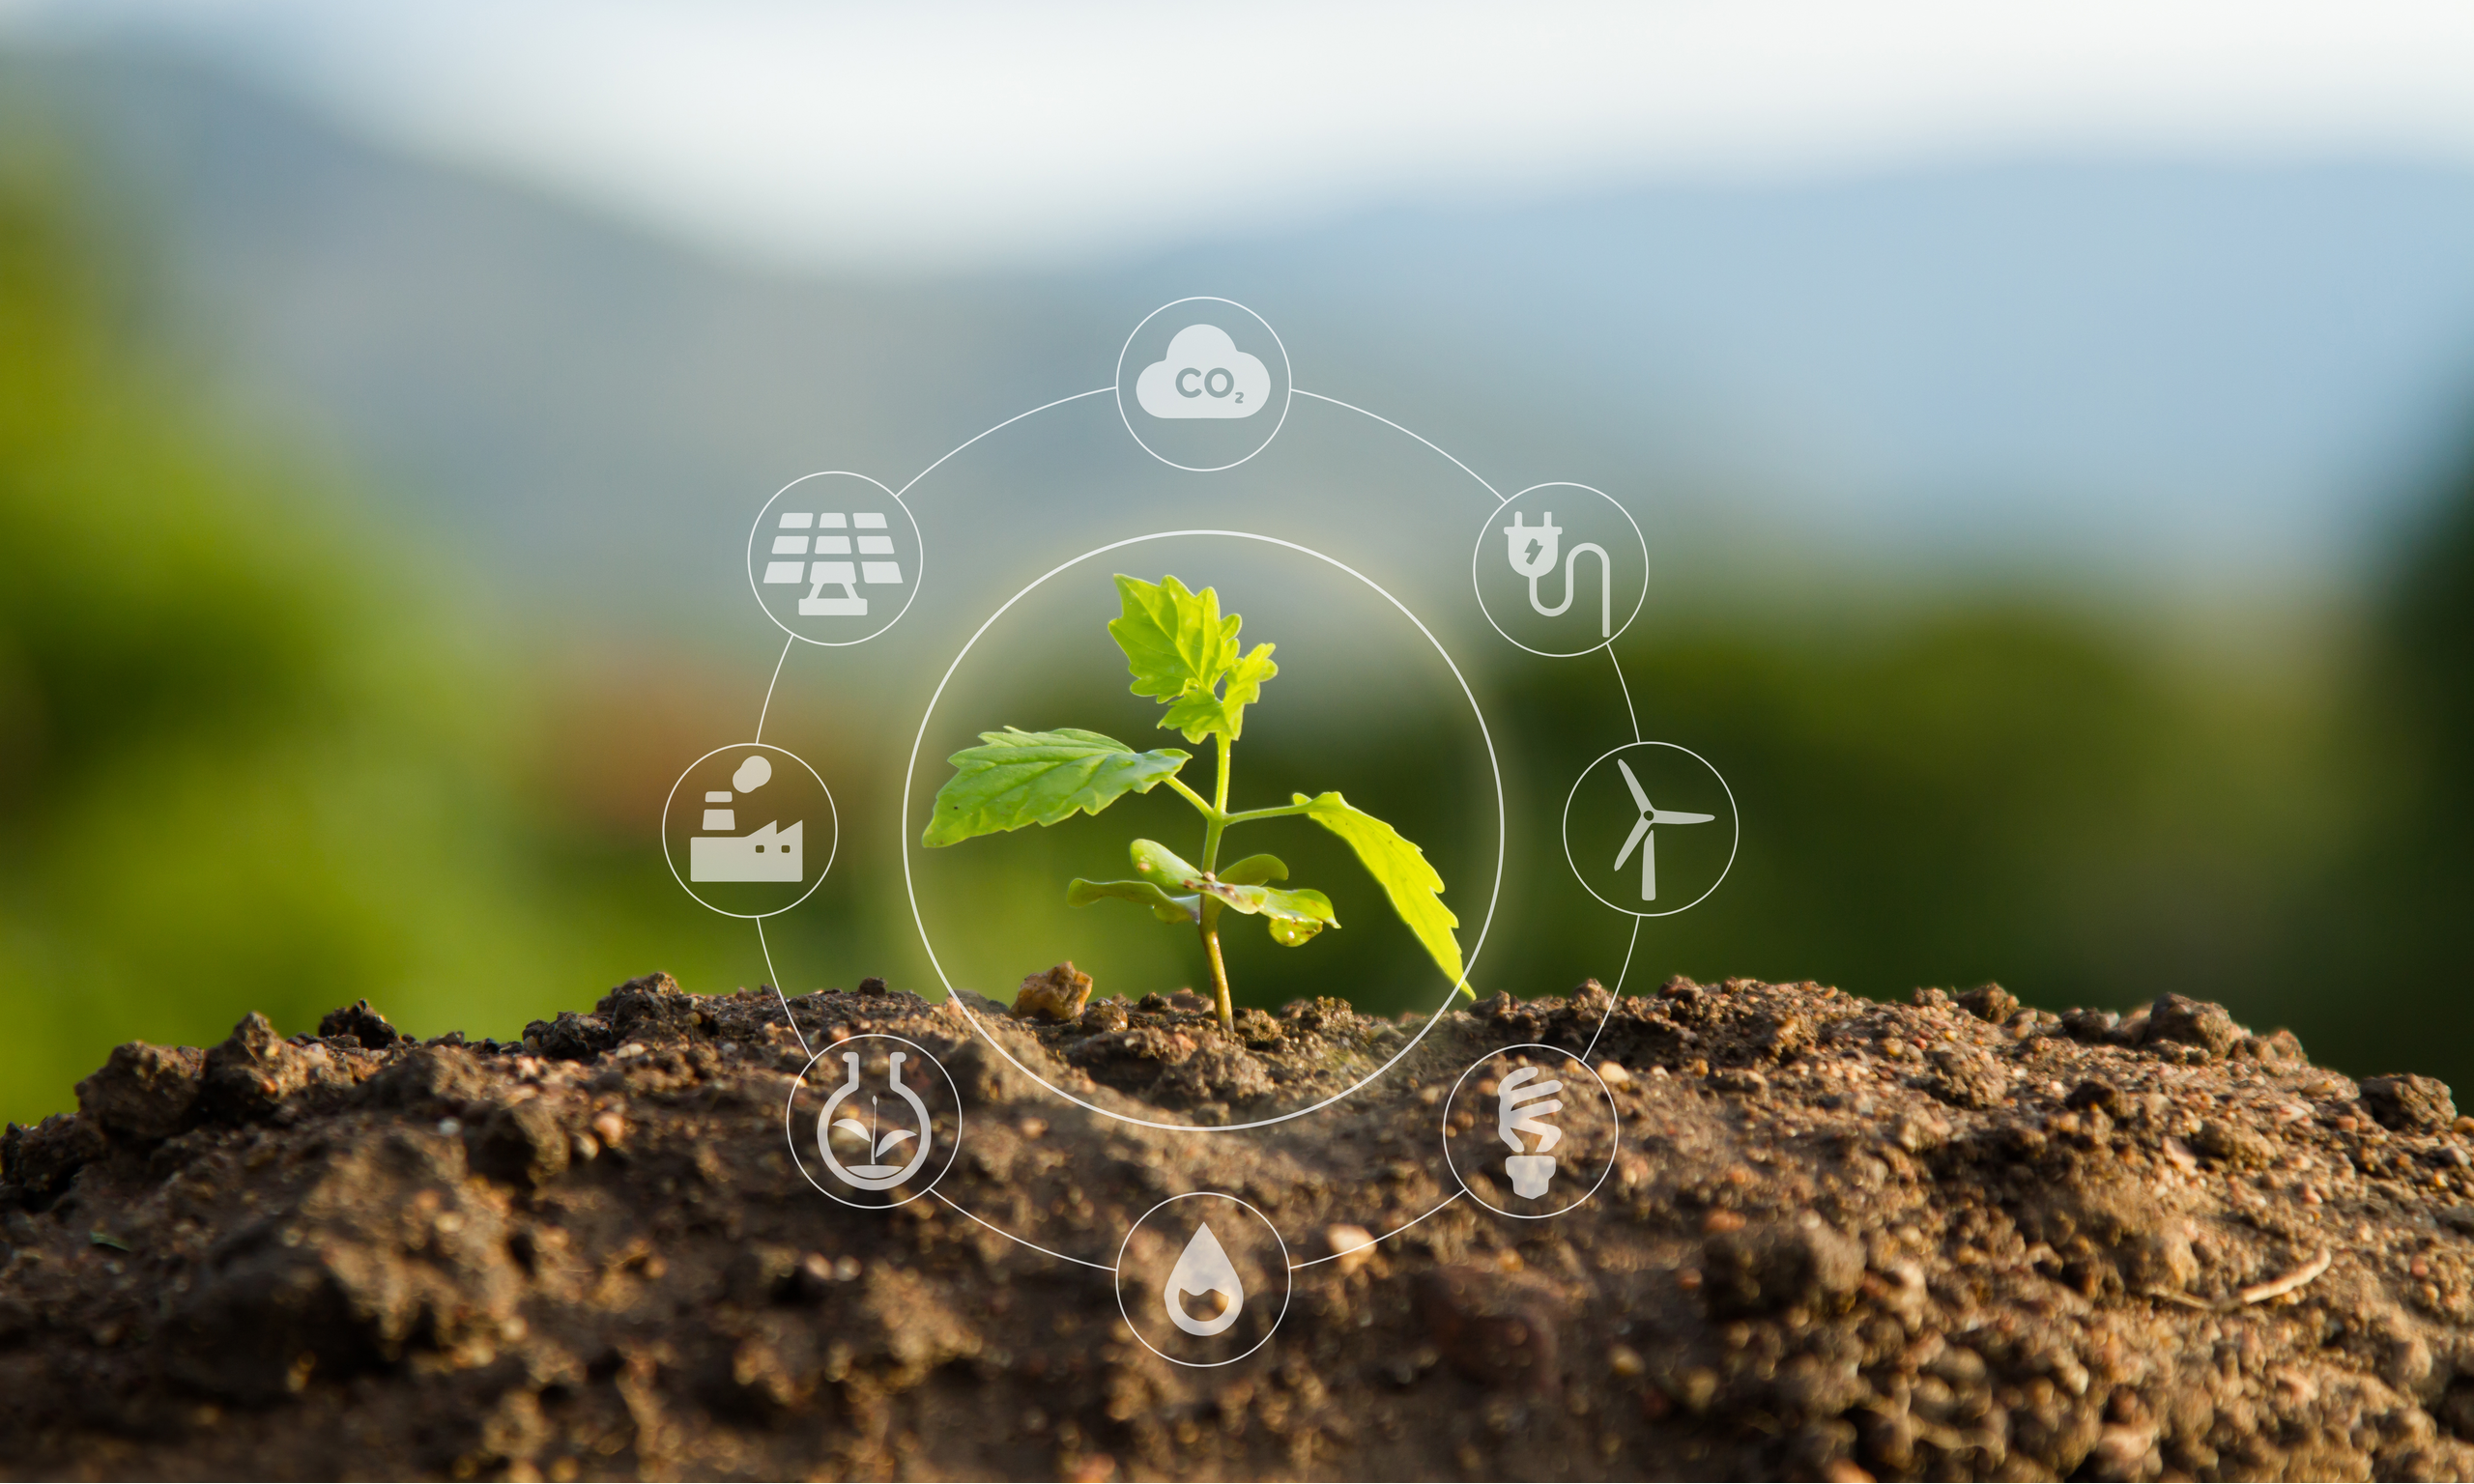 Seedling growing in soil mound surrounded by sustainable energy icons.